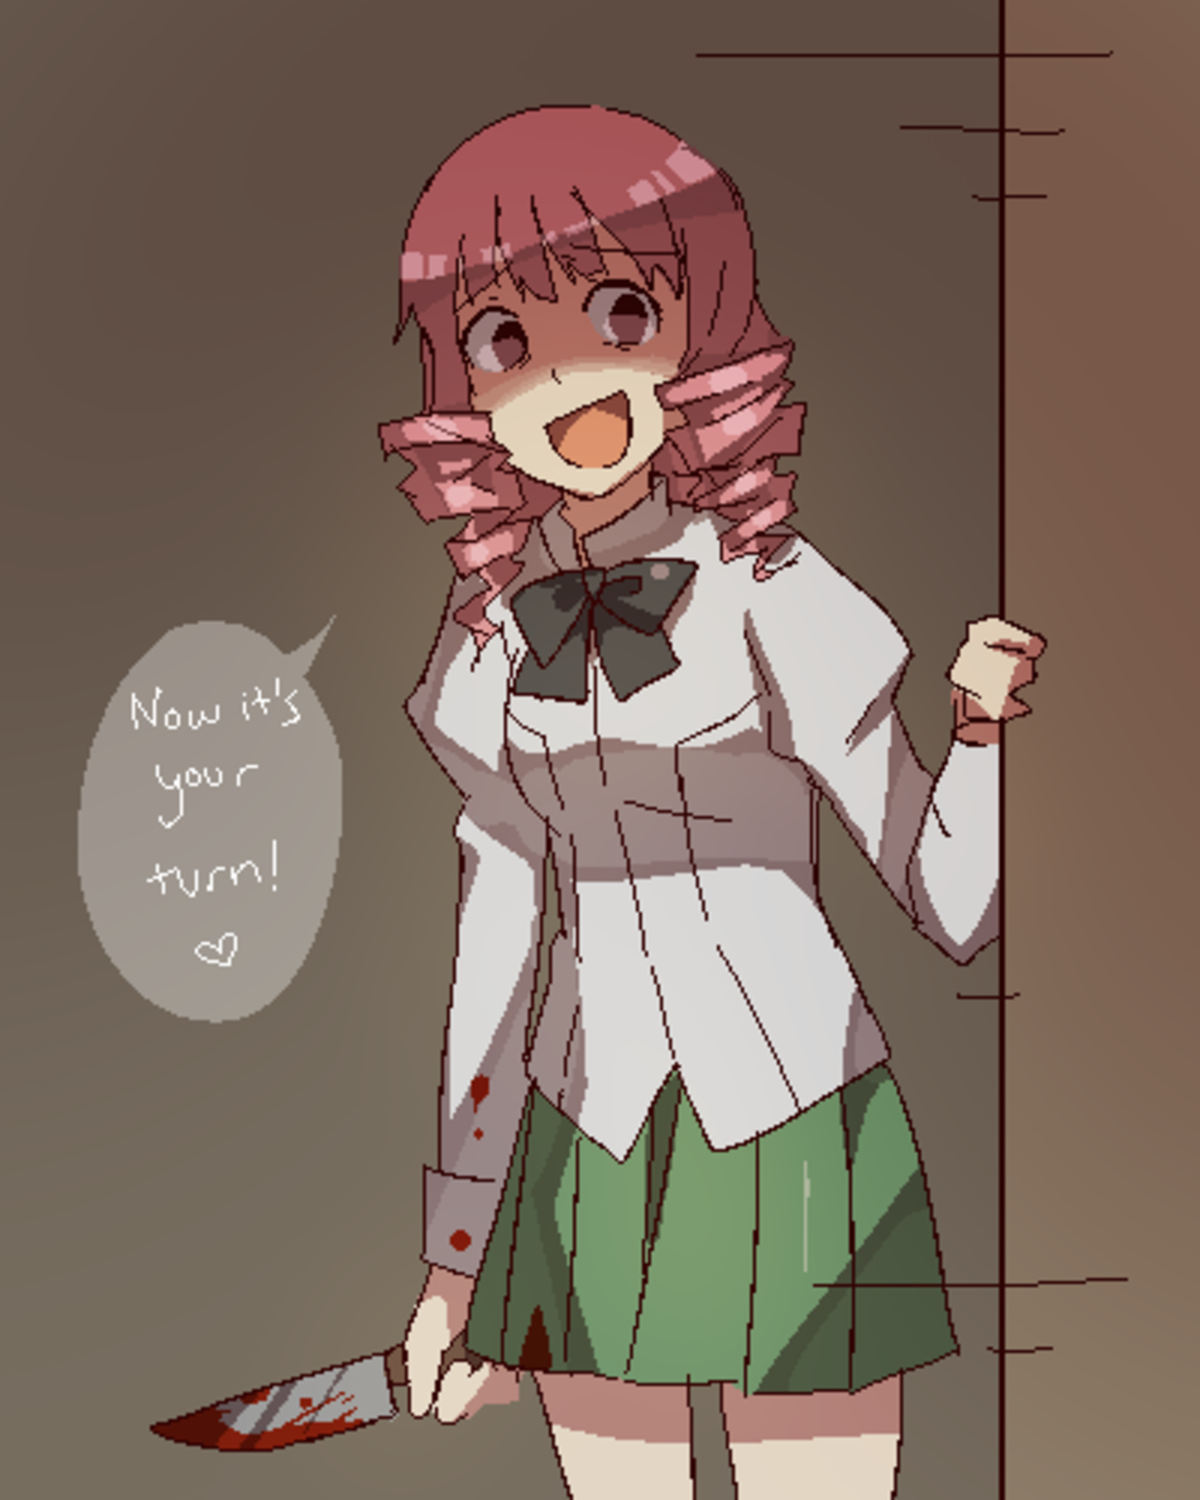 Guess you gave her too much comfort. ..  Run Hisao. A heart attack is less painful than what she has planned